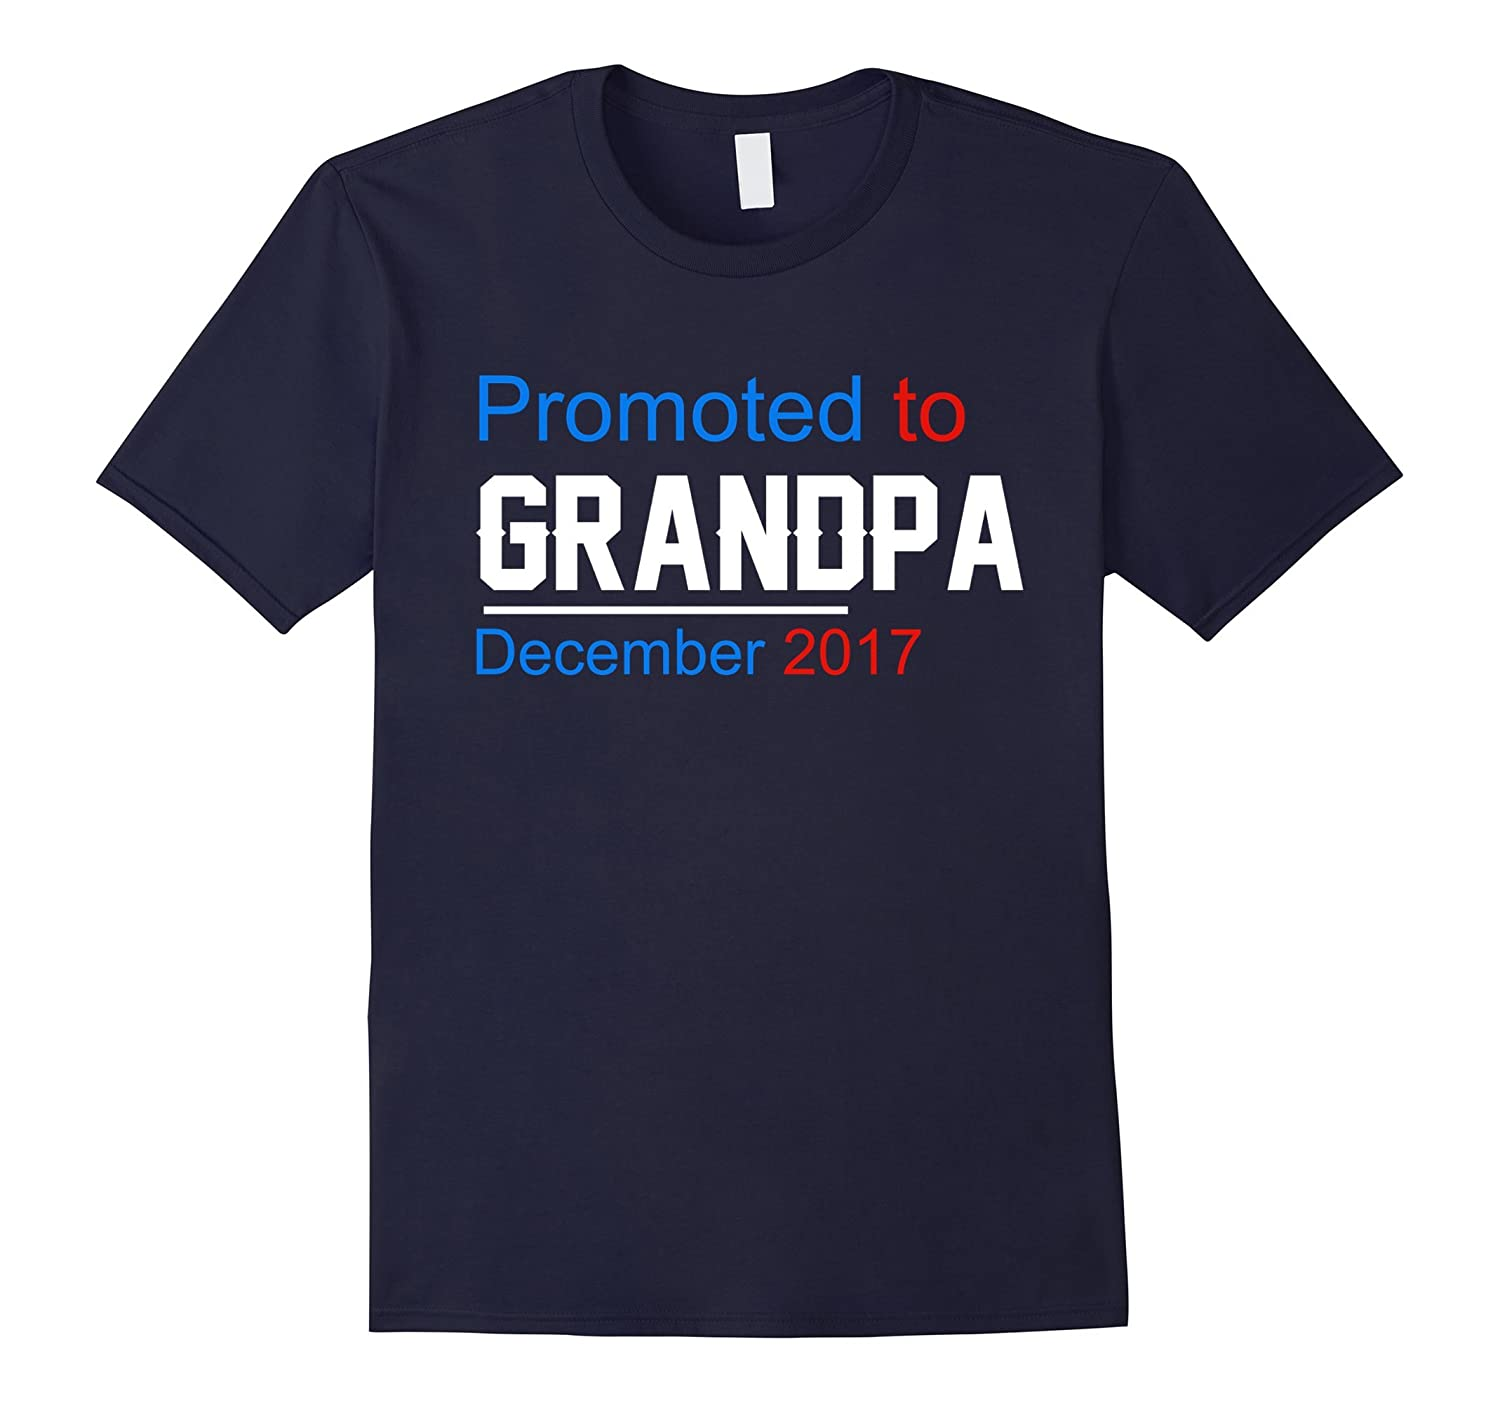 Mens Promoted to Grandpa December 2017 T-Shirt Gift for Papa